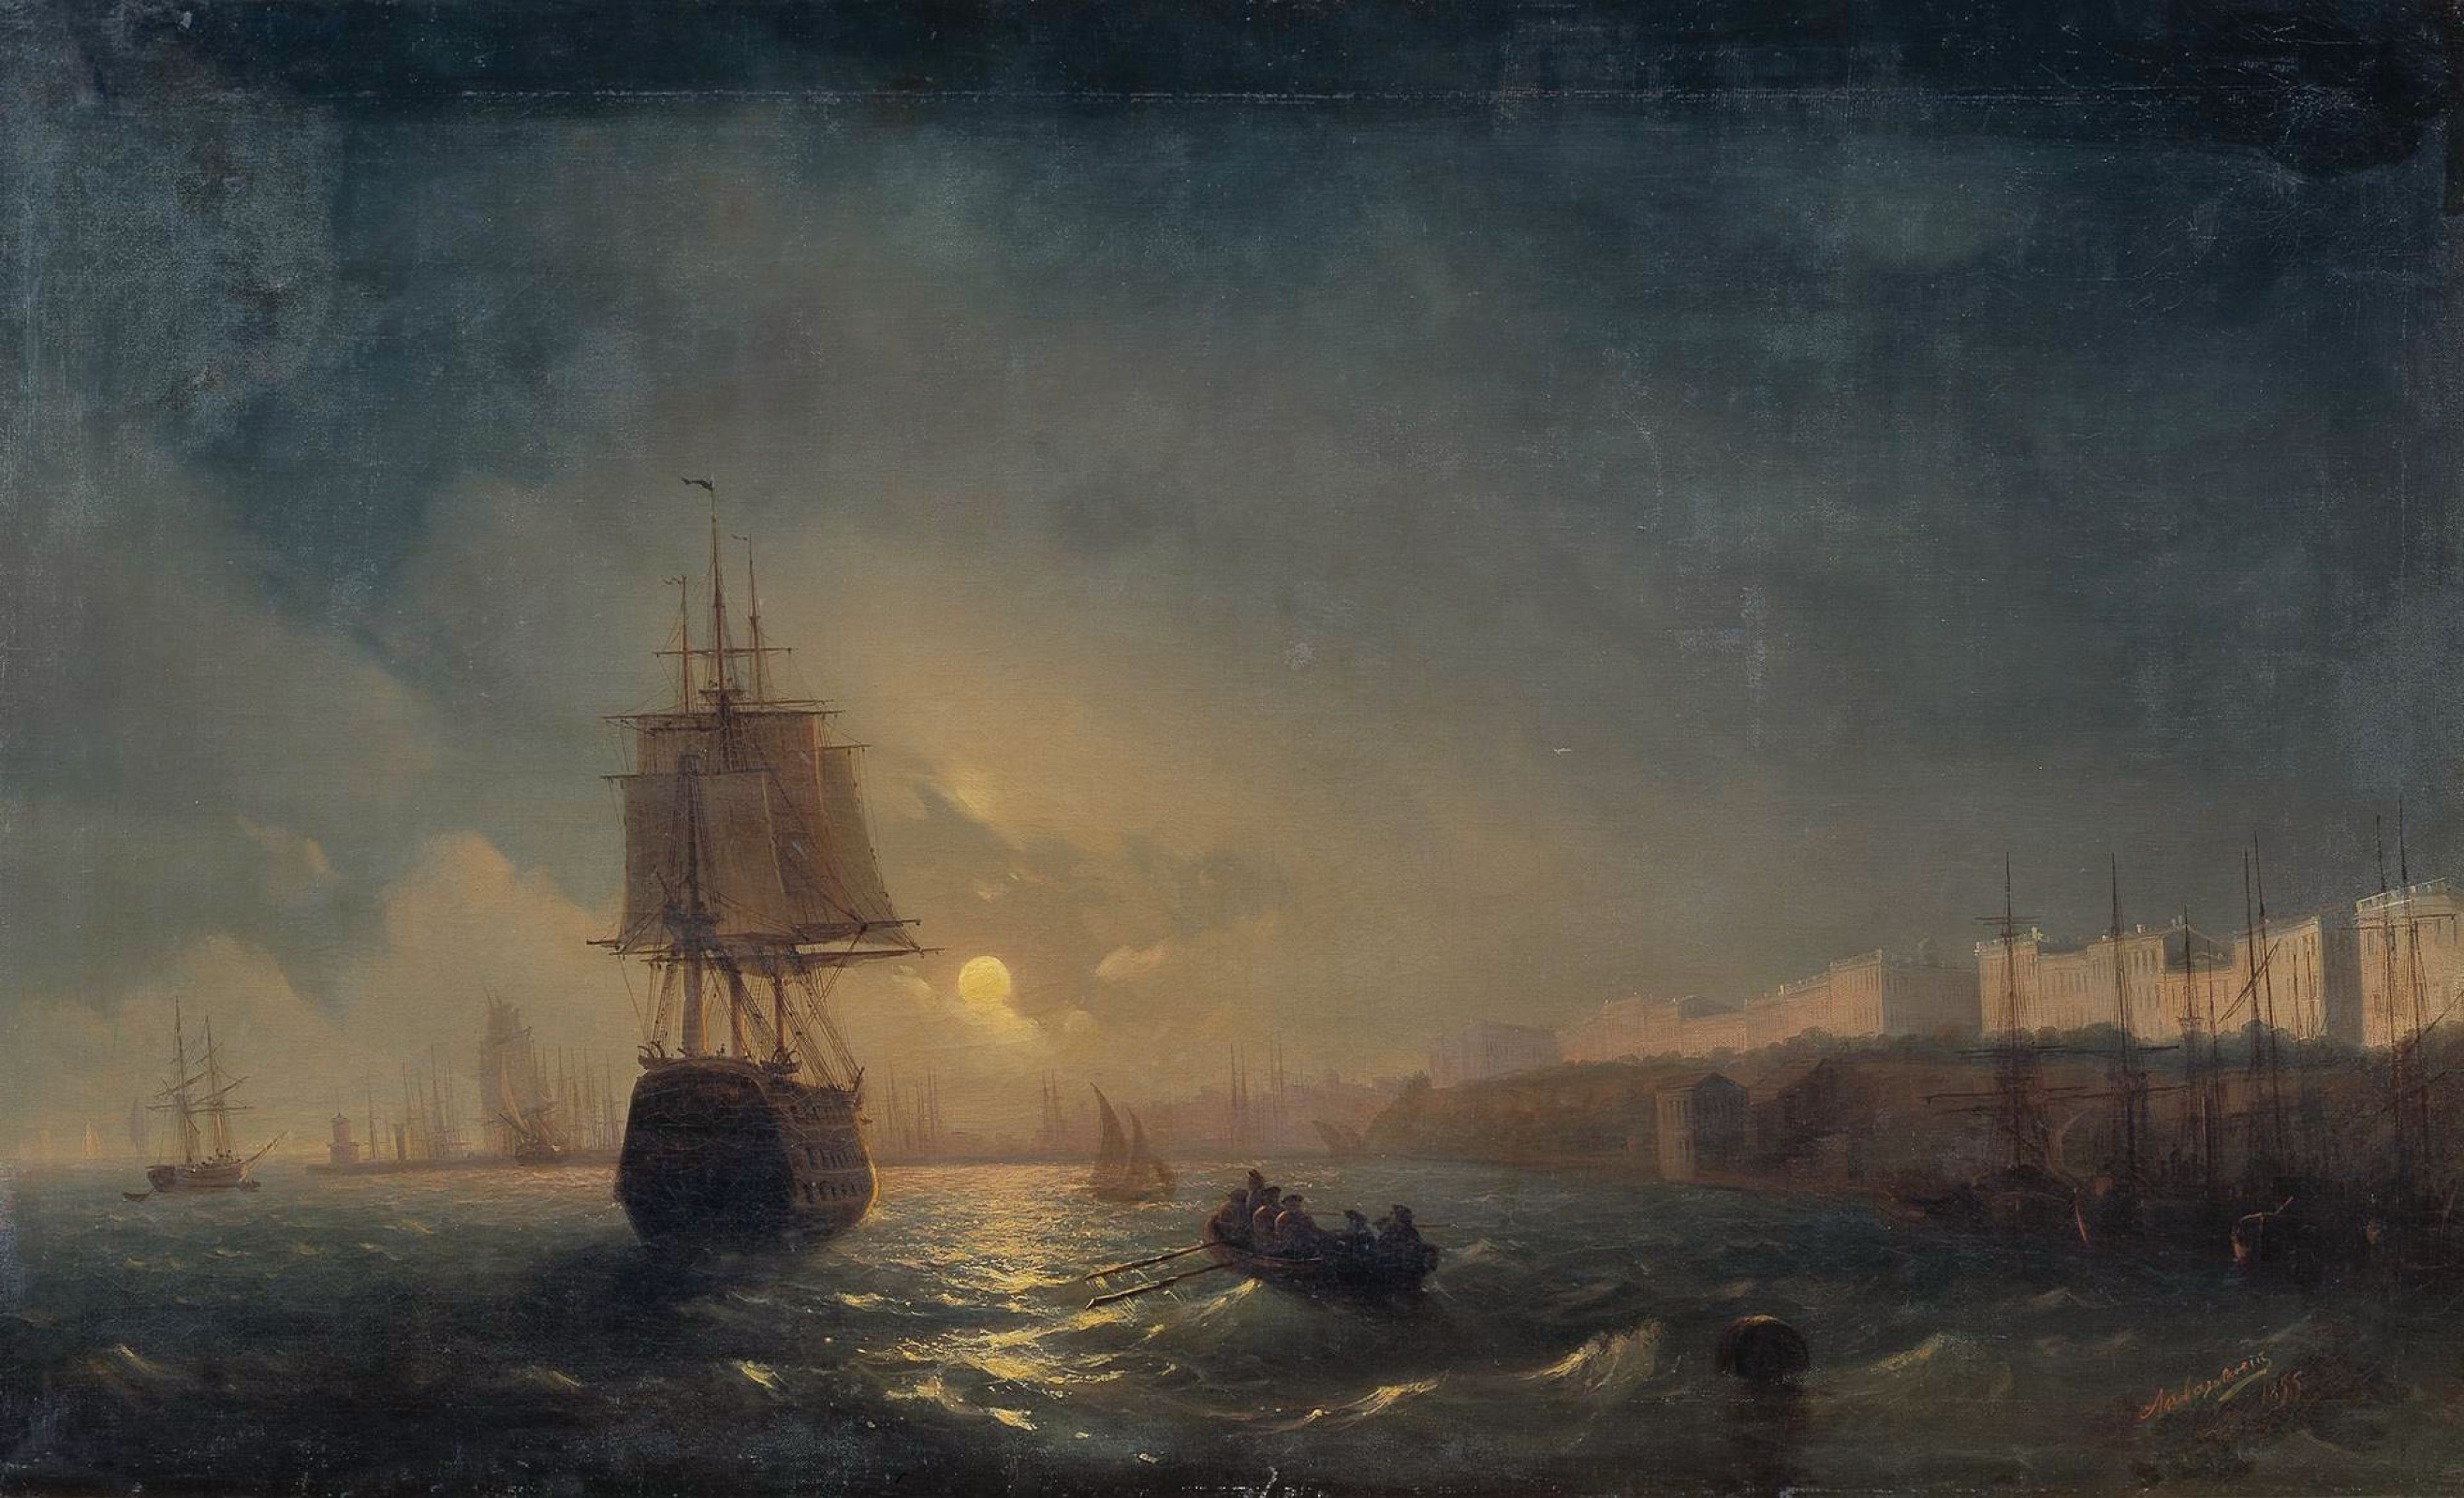 http://upload.wikimedia.org/wikipedia/commons/e/e8/Aivasovsky_Ivan_Constantinovich_The_Harbor_At_Odessa_On_The_Black_Sea.jpg